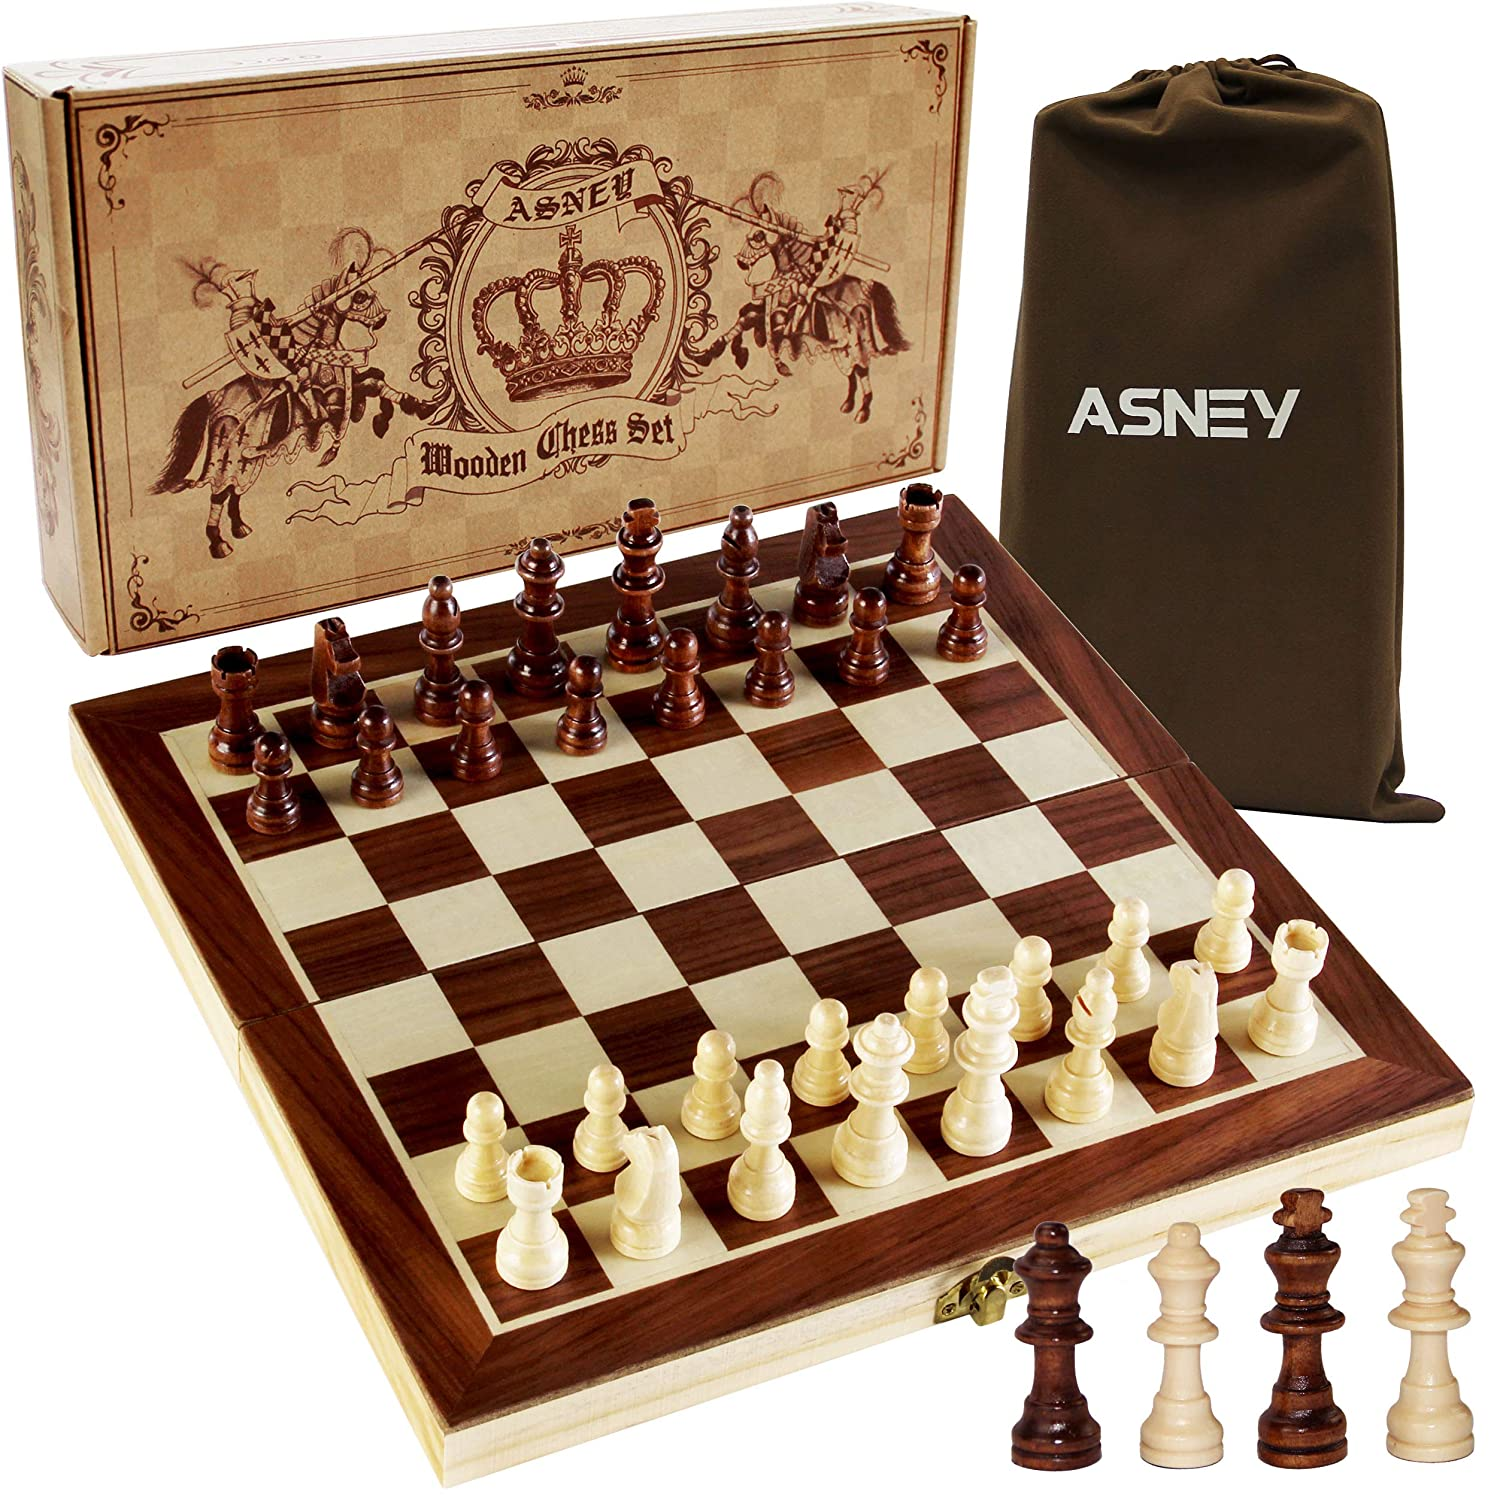 """ASNEY Upgraded Magnetic Chess Set, 12"""" x 12"""" Folding Wooden Chess Set with Magnetic Crafted Chess Pieces, Chess Game Board Set with Storage Slots, Includes Extra Kings Queens and Carry Bag"""